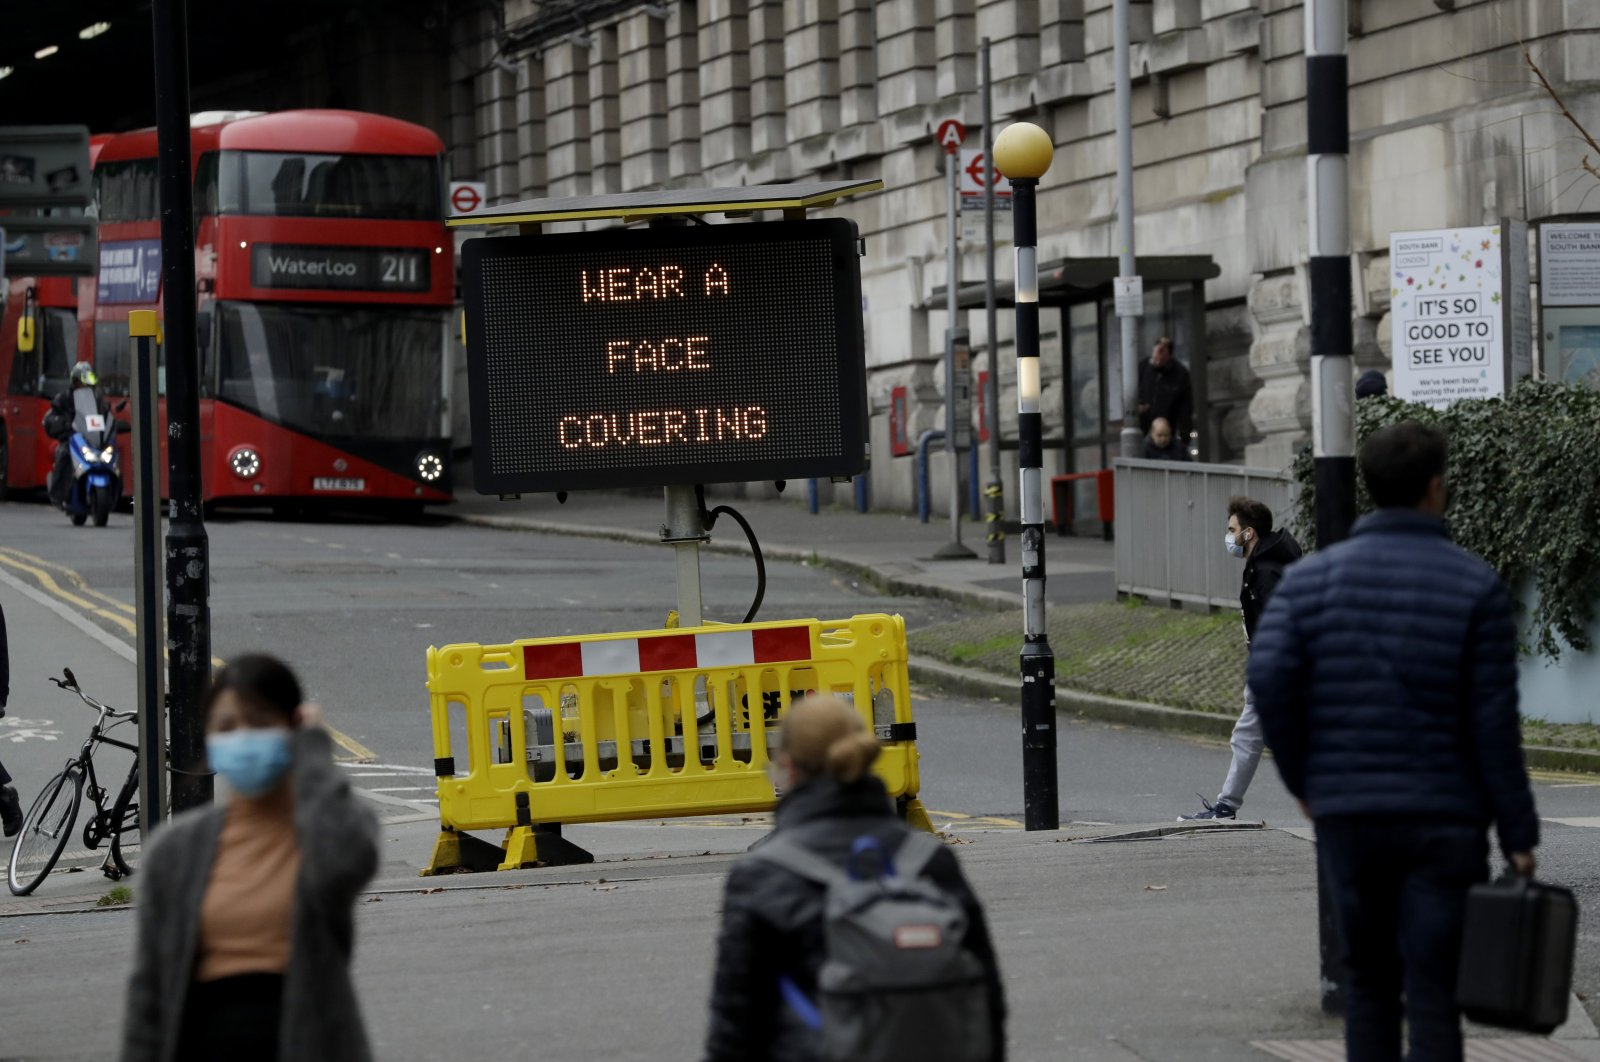 A sign is displayed outside Waterloo train station to remind people they are required to wear face coverings inside the station and while traveling on trains during England's second coronavirus lockdown, in London, Nov. 20, 2020. (AP Photo)